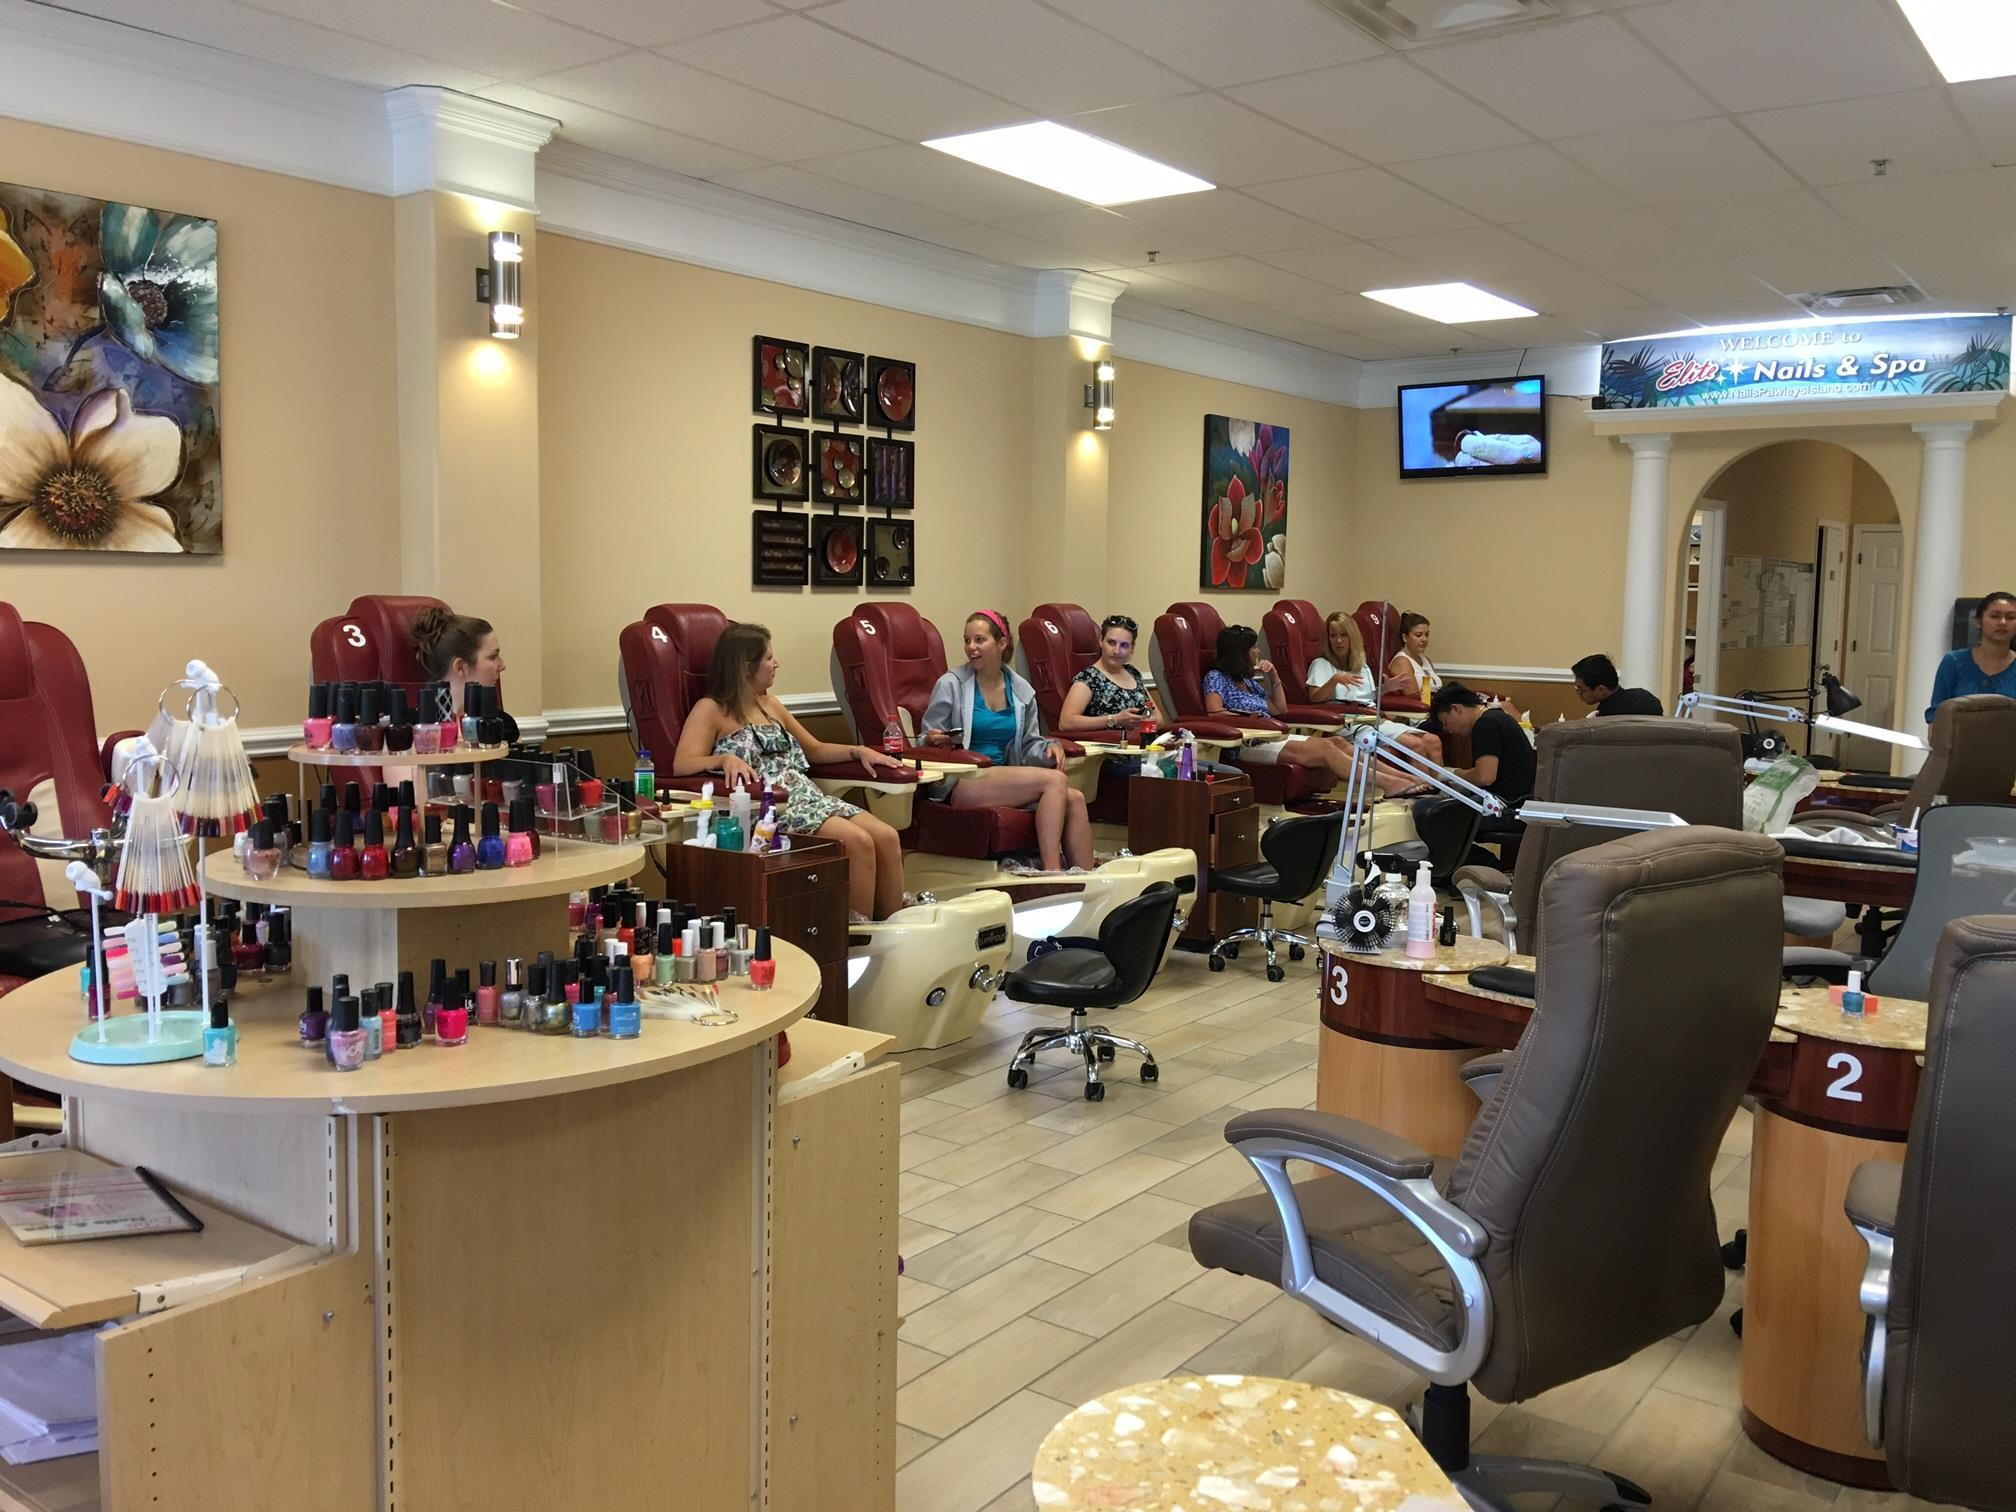 Elite Nails & Spa in Pawleys Island, SC 29585 - ChamberofCommerce.com